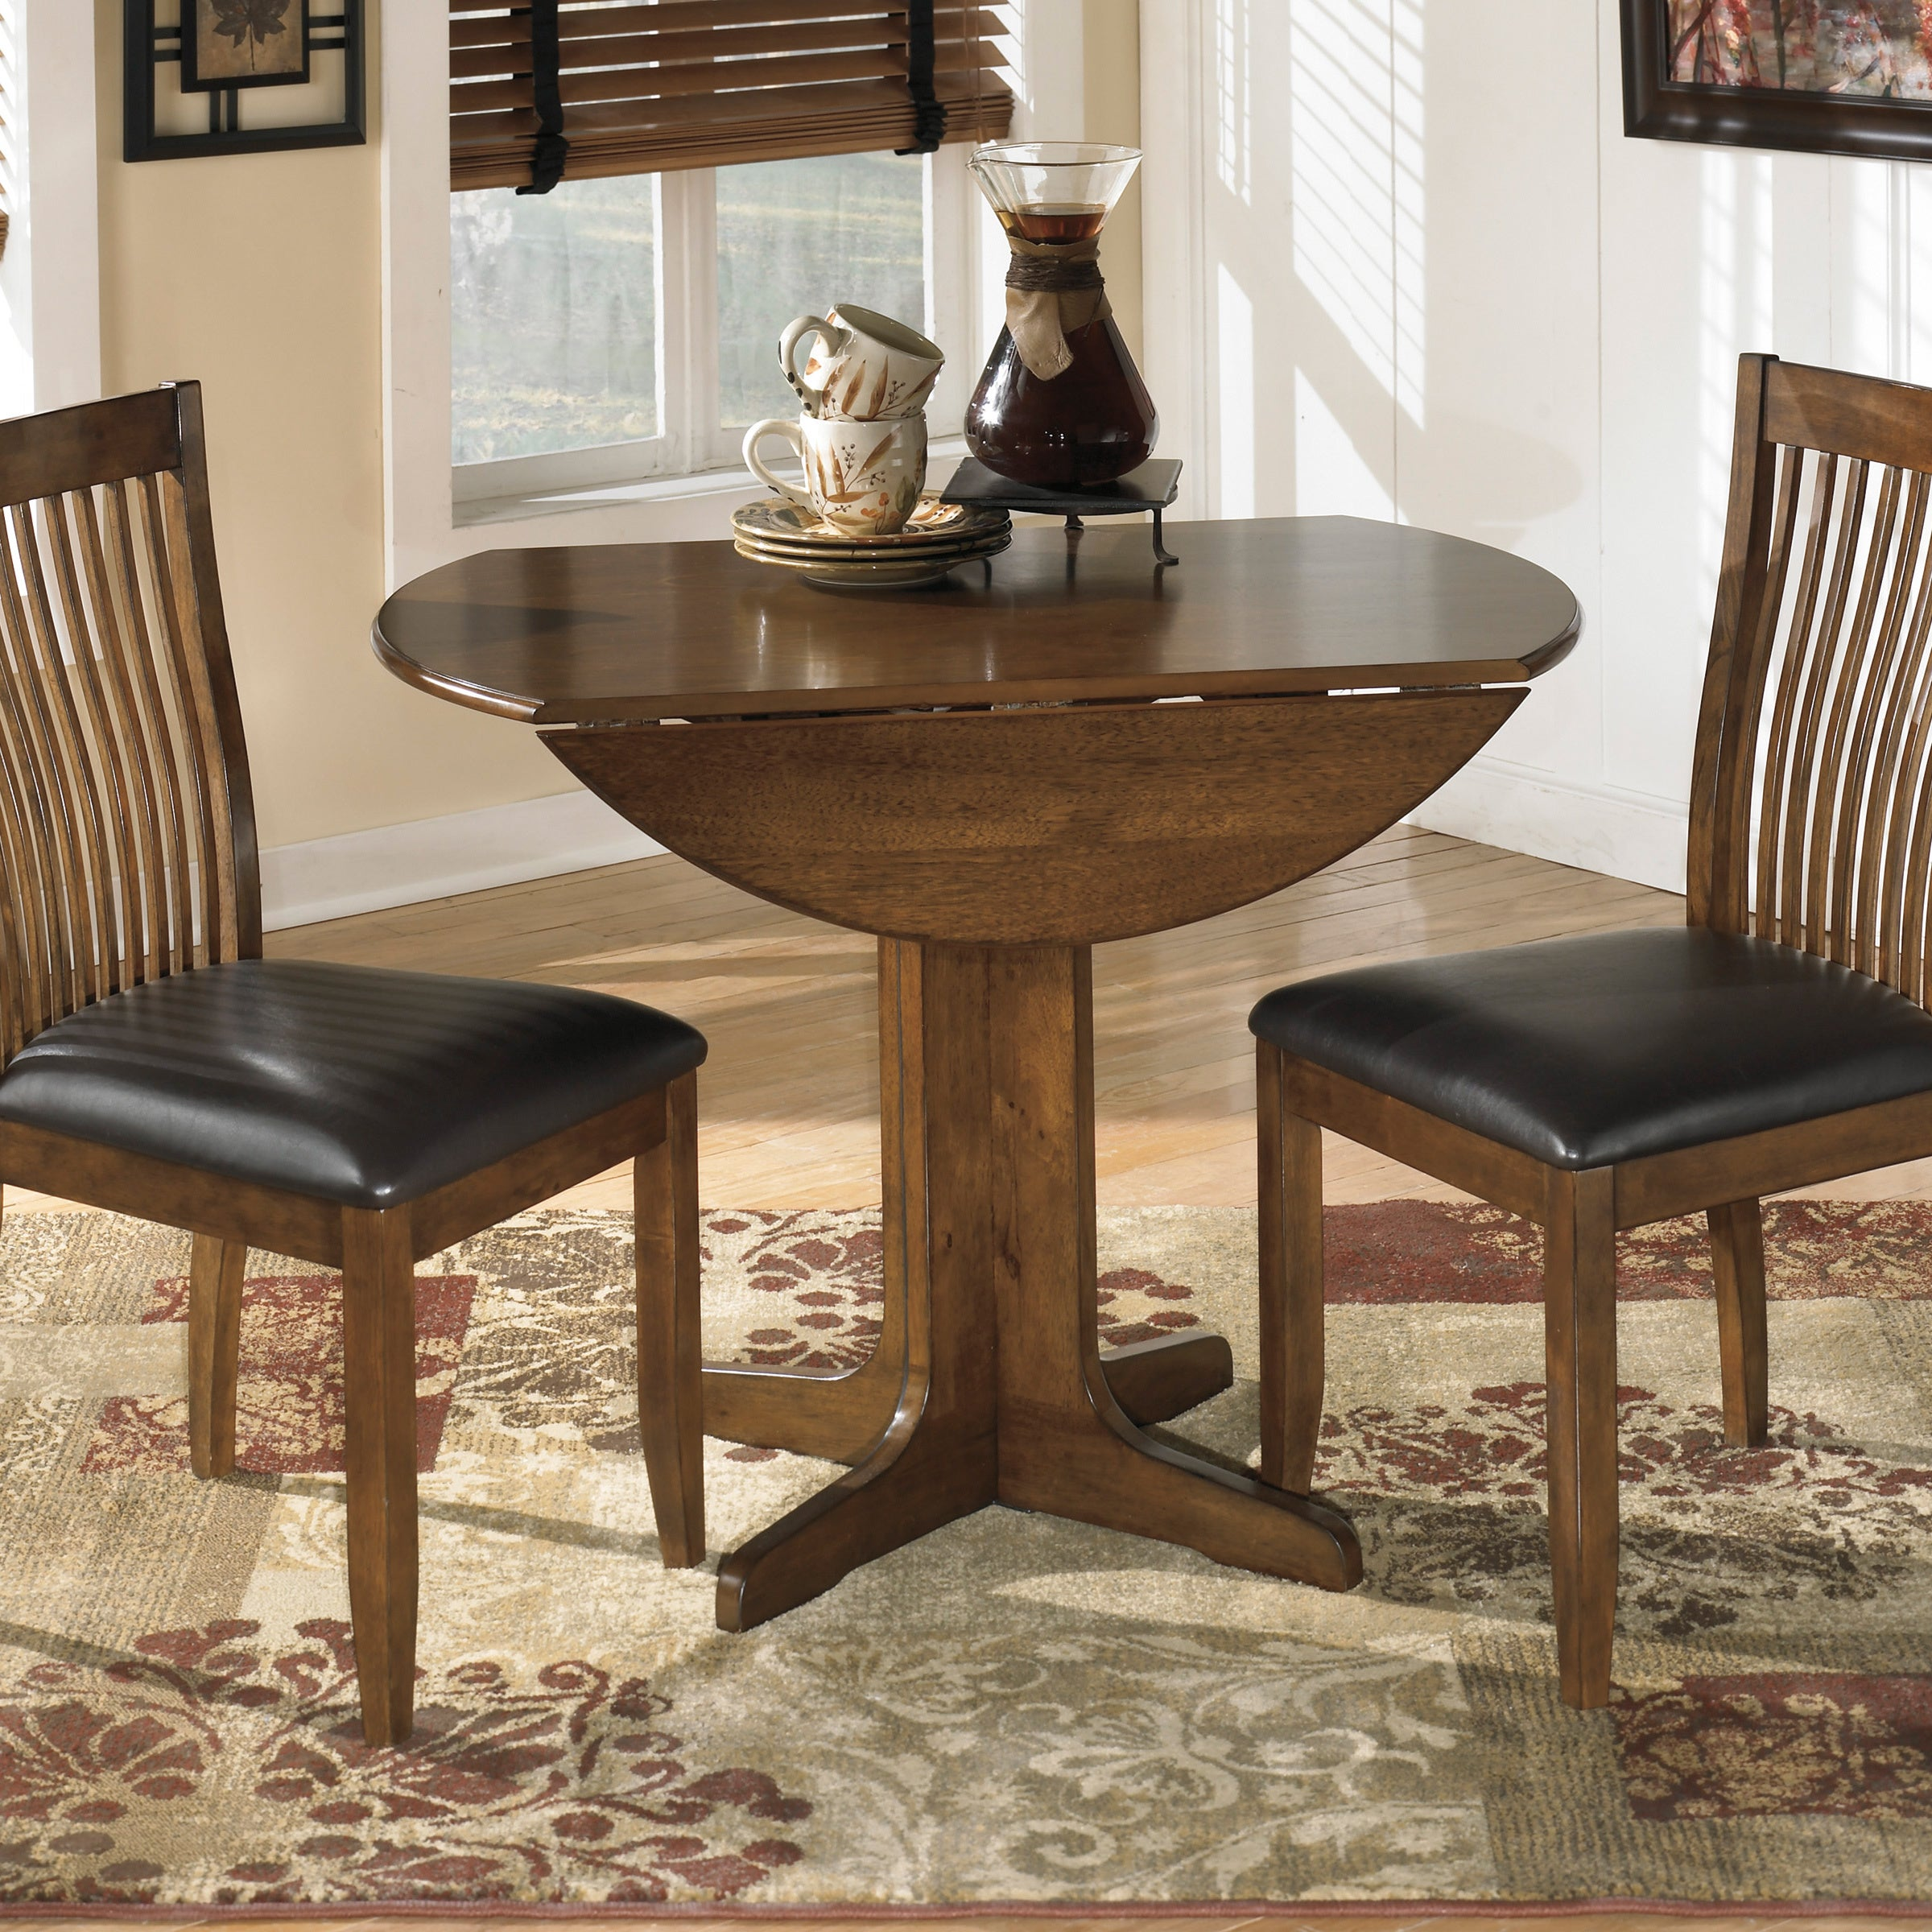 Signature Designs by Ashley Stuman Round Drop leaf Table  : Signature Designs by Ashley Stuman Round Drop leaf Table b924a0ad 3ccb 4637 95a3 d1d8080fe963 from www.overstock.com size 2400 x 2400 jpeg 818kB